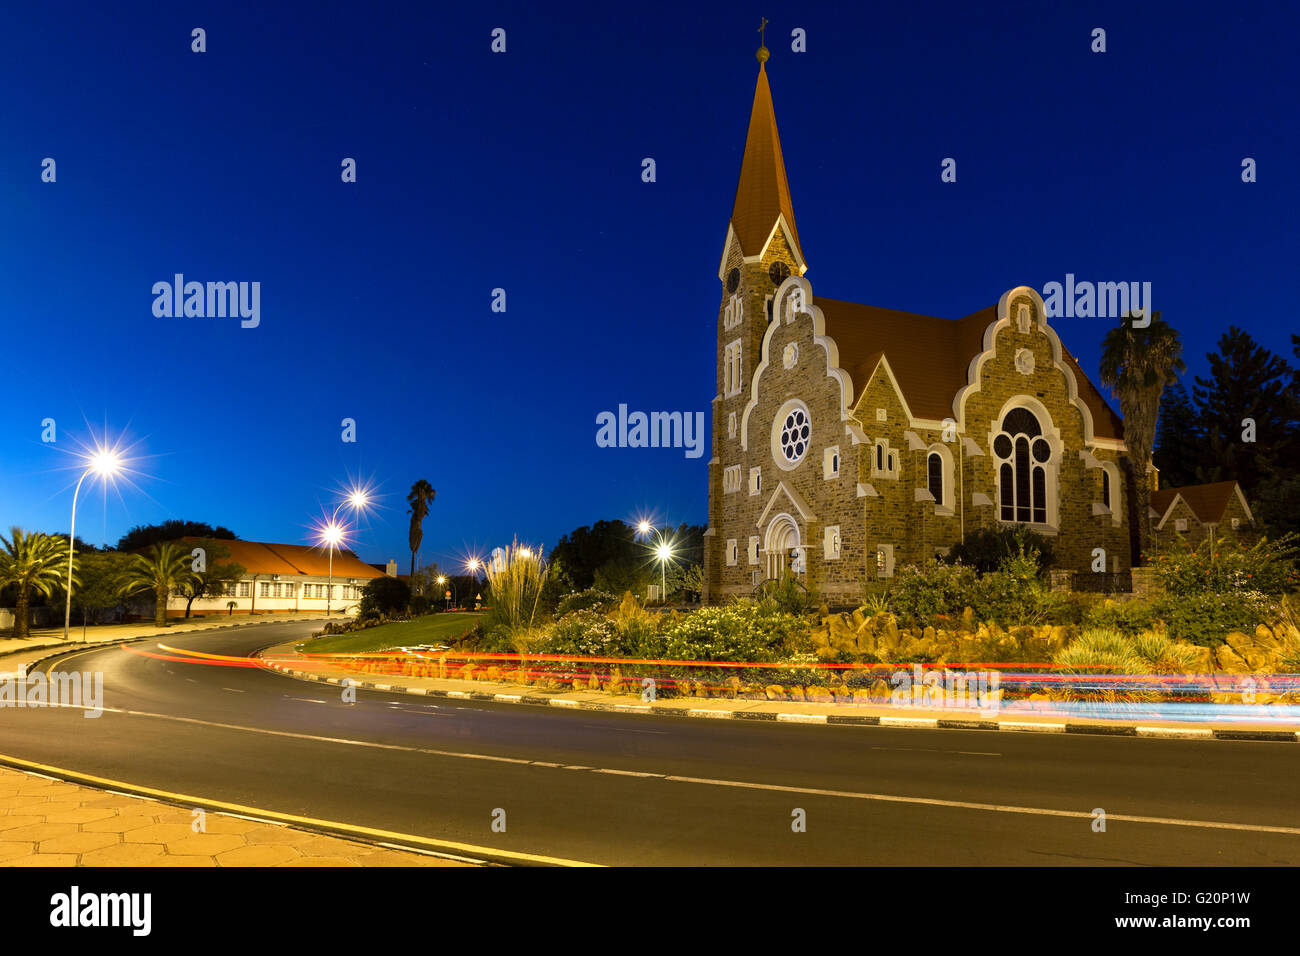 Christ Church in Windhoek, Namibia - Stock Image